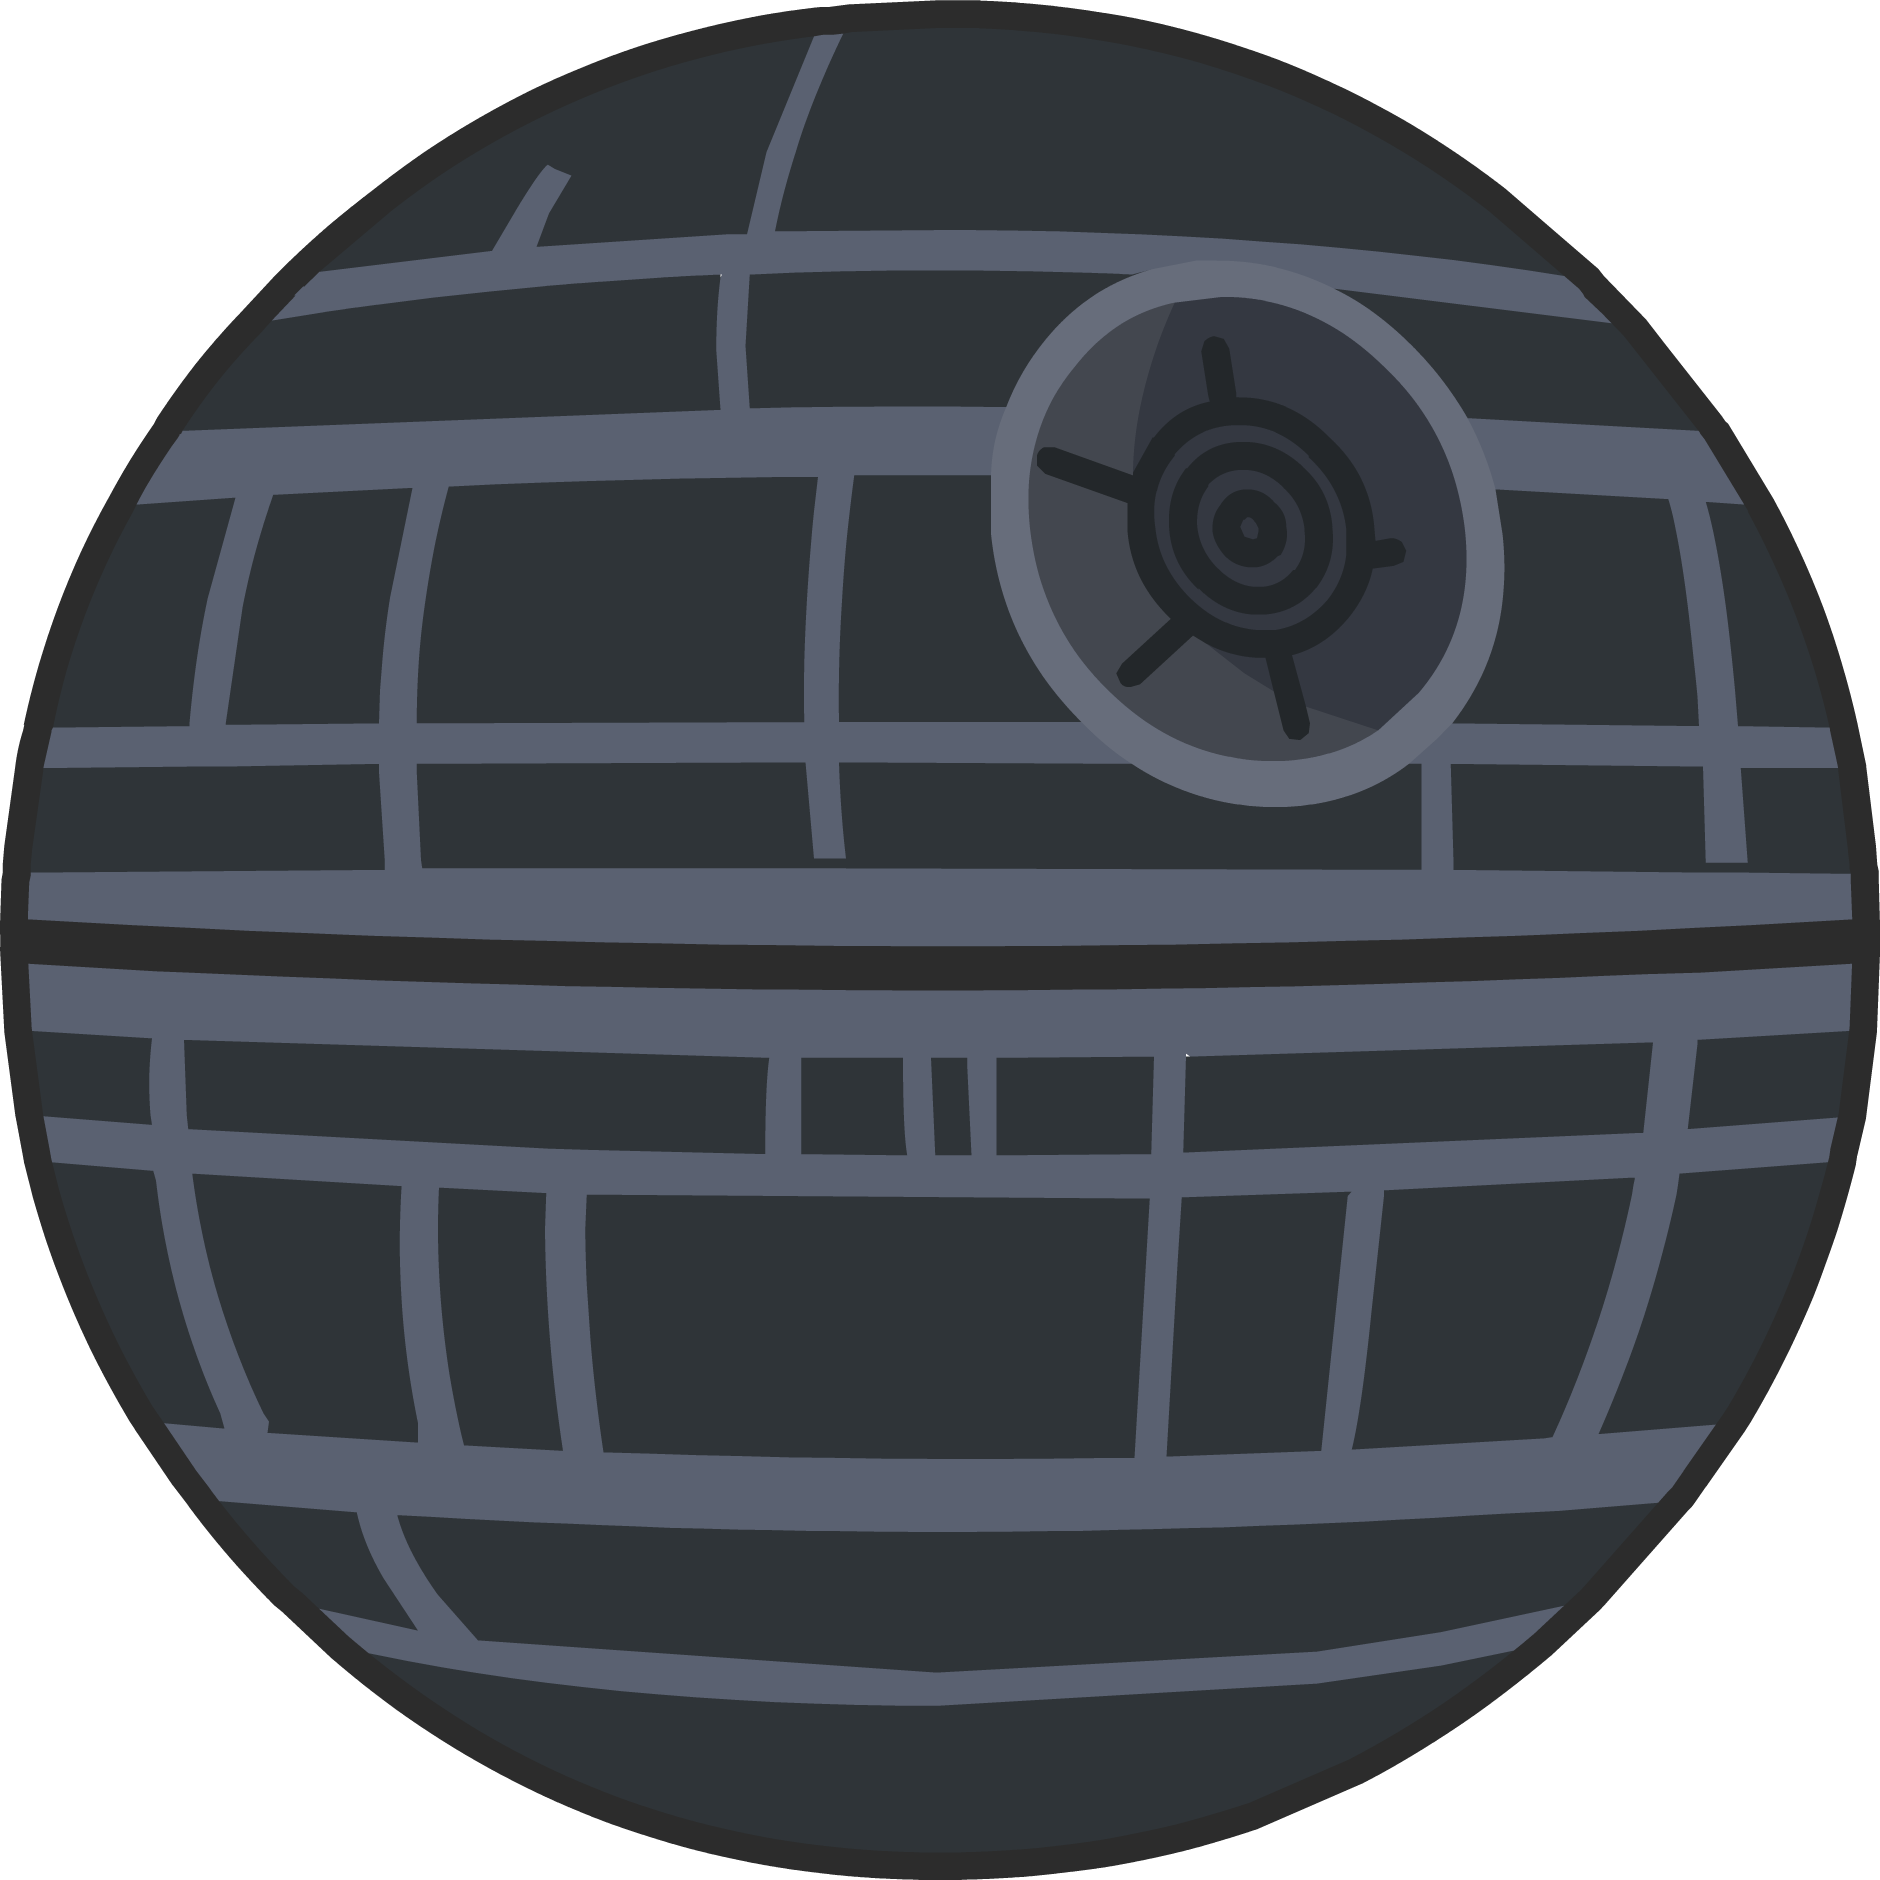 Death star clip art png. Image icon club penguin